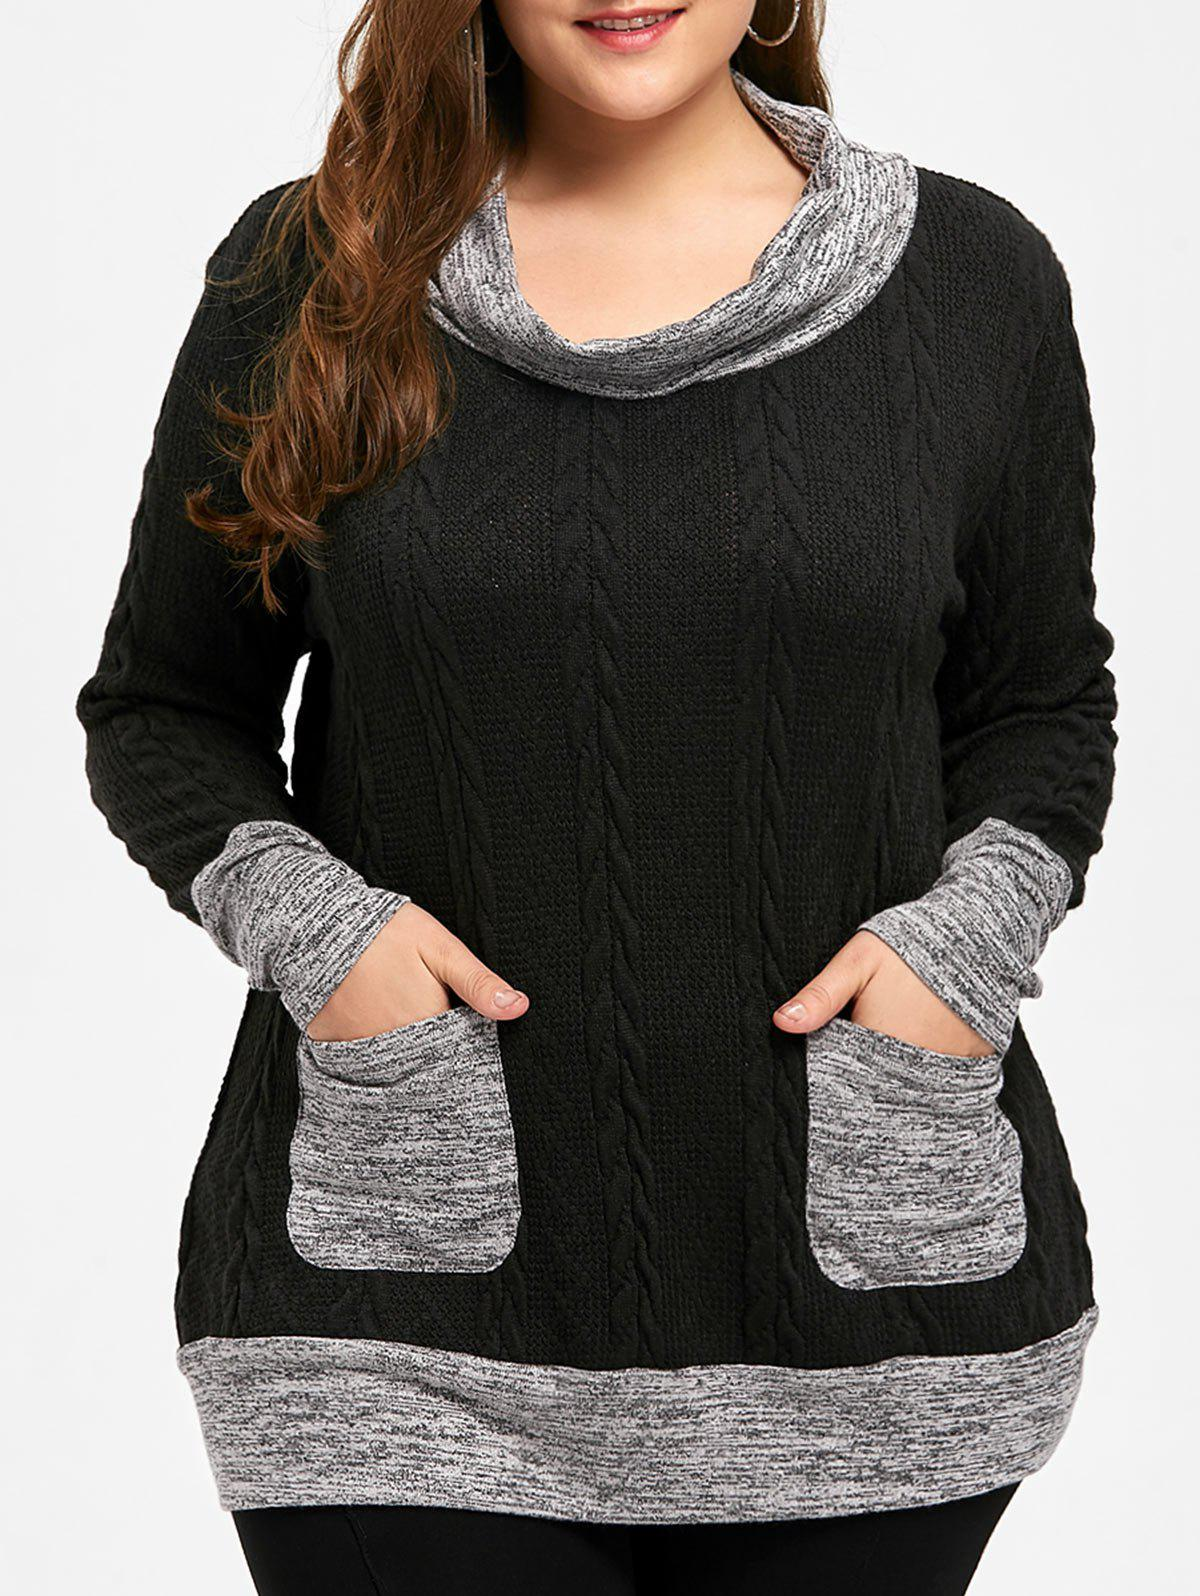 Plus Size Cable Knitted Cowl Neck SweaterWOMEN<br><br>Size: 2XL; Color: BLACK; Type: Pullovers; Material: Polyester,Spandex; Sleeve Length: Full; Collar: Cowl Neck; Style: Casual; Season: Fall,Spring; Pattern Type: Solid; Weight: 0.4800kg; Package Contents: 1 x Sweater;